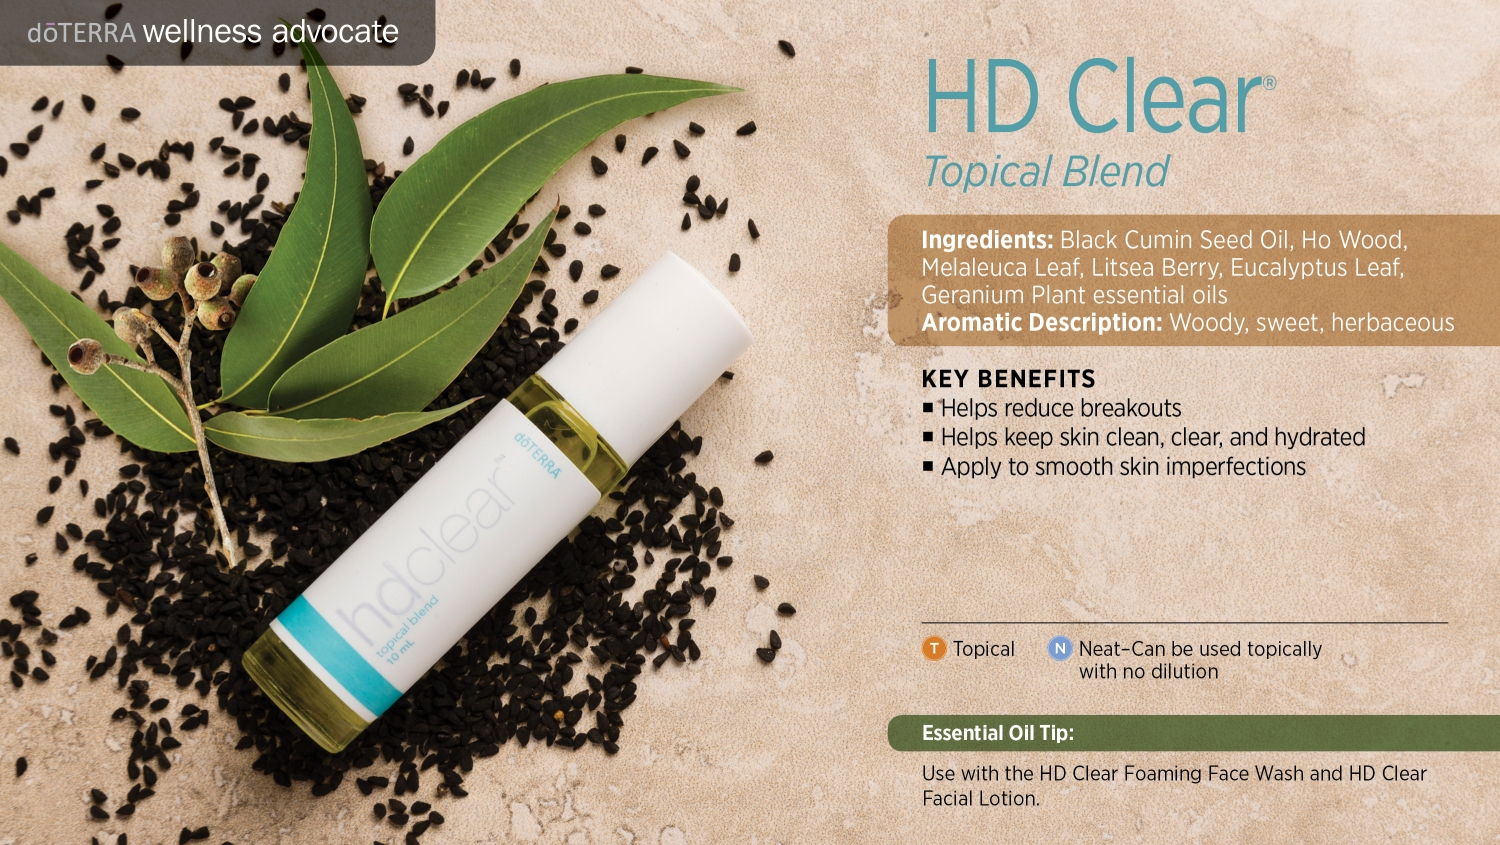 Doterra HD Clear topical blend